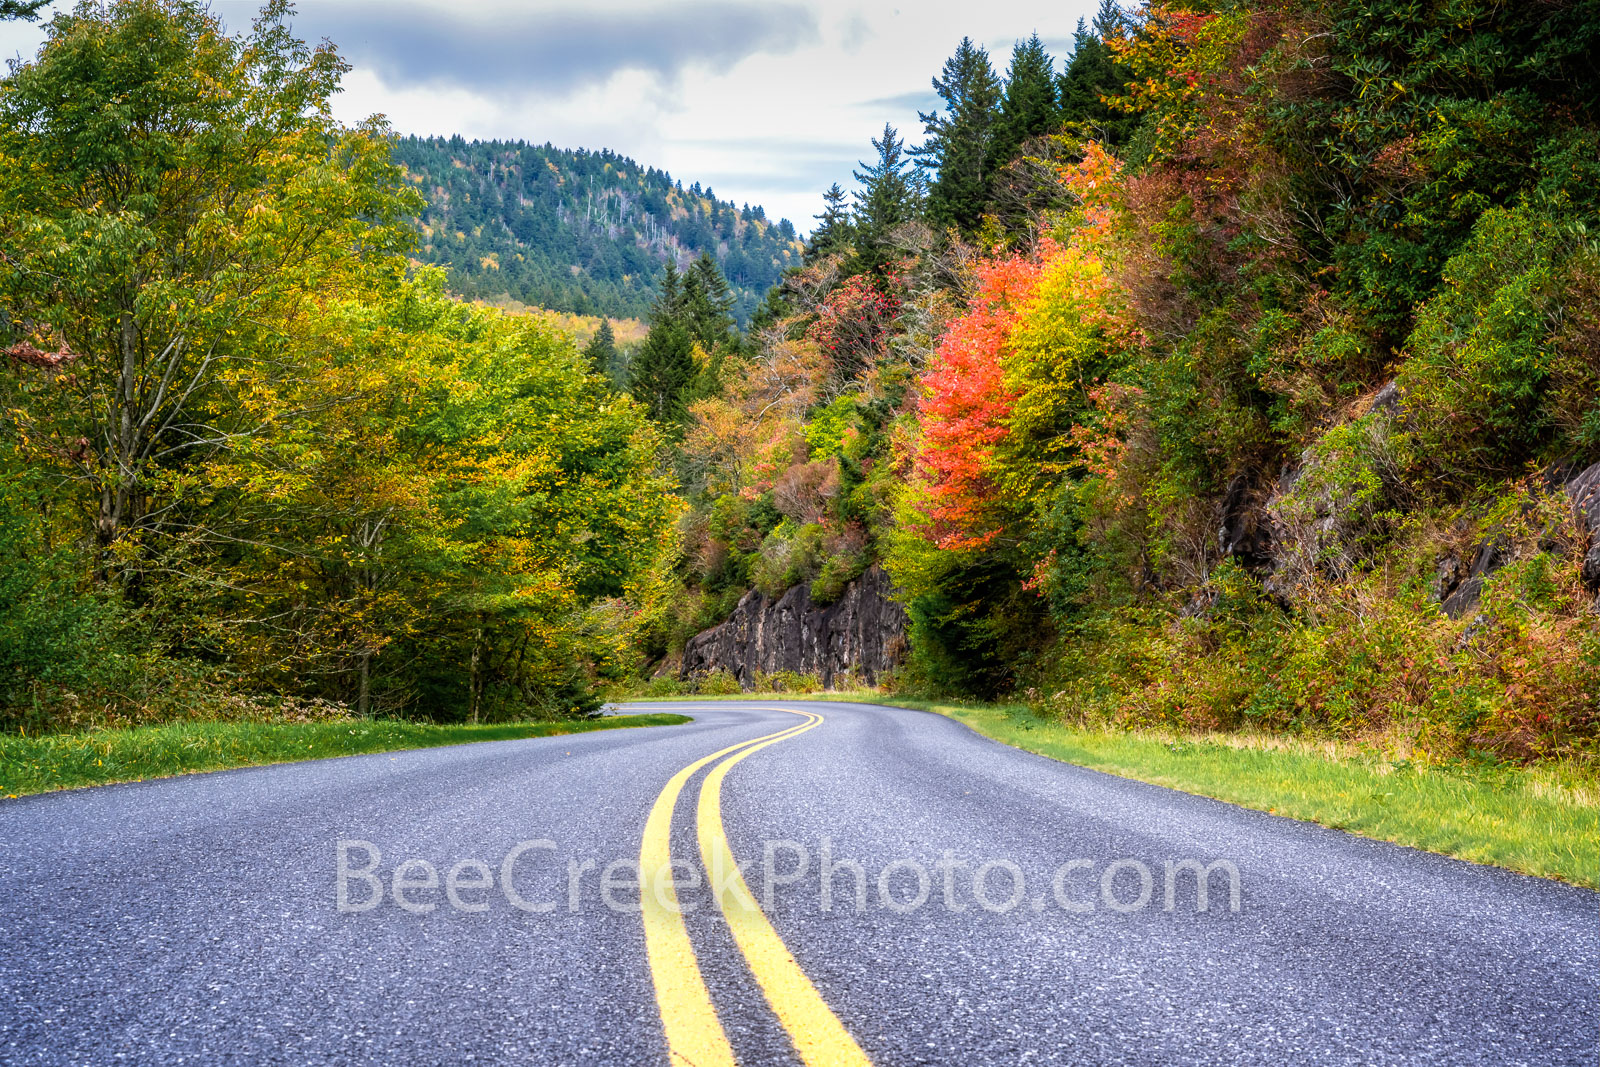 Fall Along the Blue Ridge Parkway - We captured this scenic road from the Blue Ridge Parkway just as the fall colors were popping...